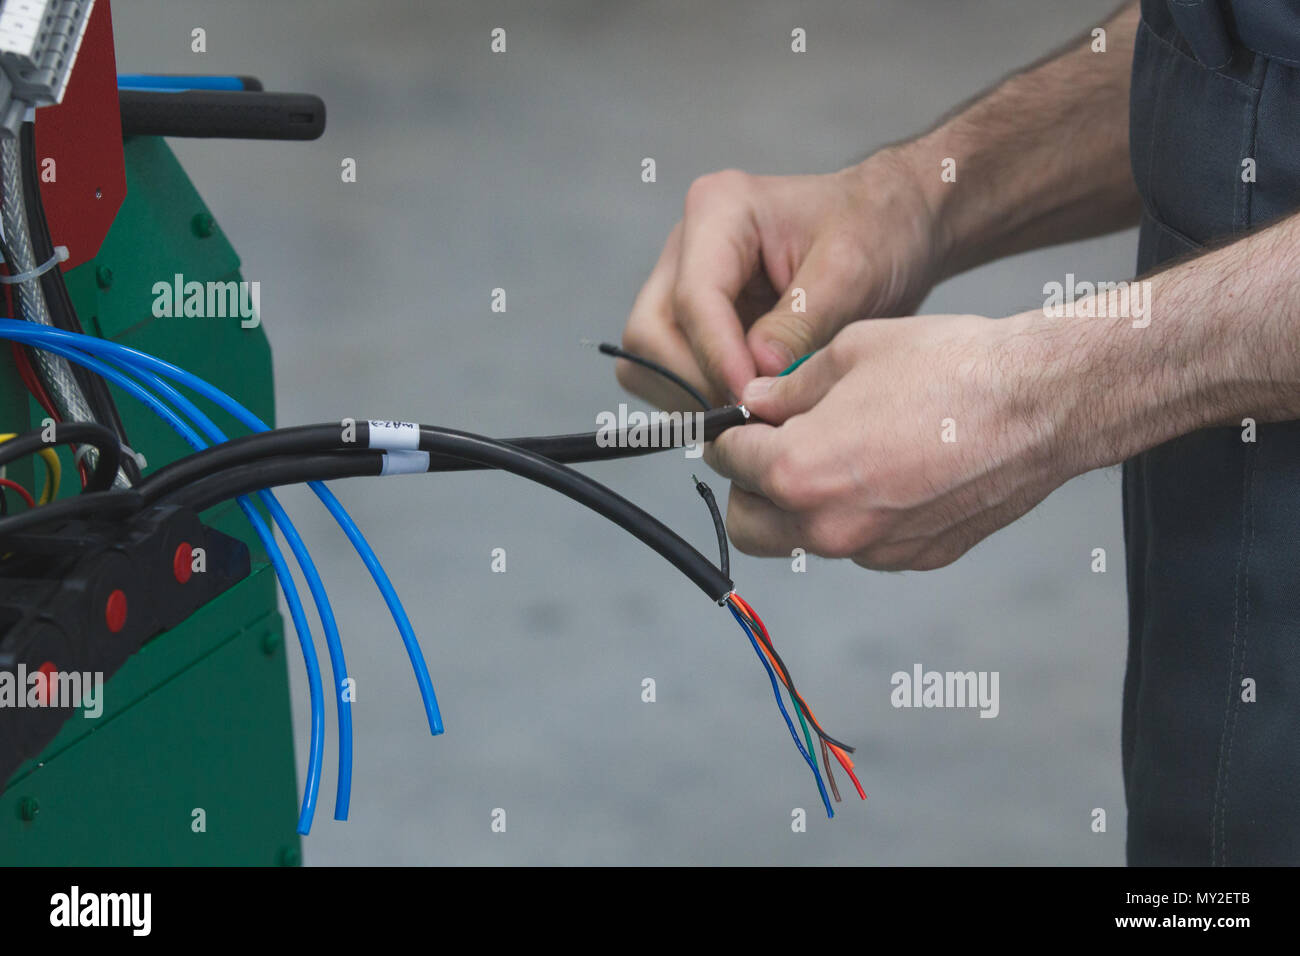 Hands of electrician works with electric wires - Stock Image